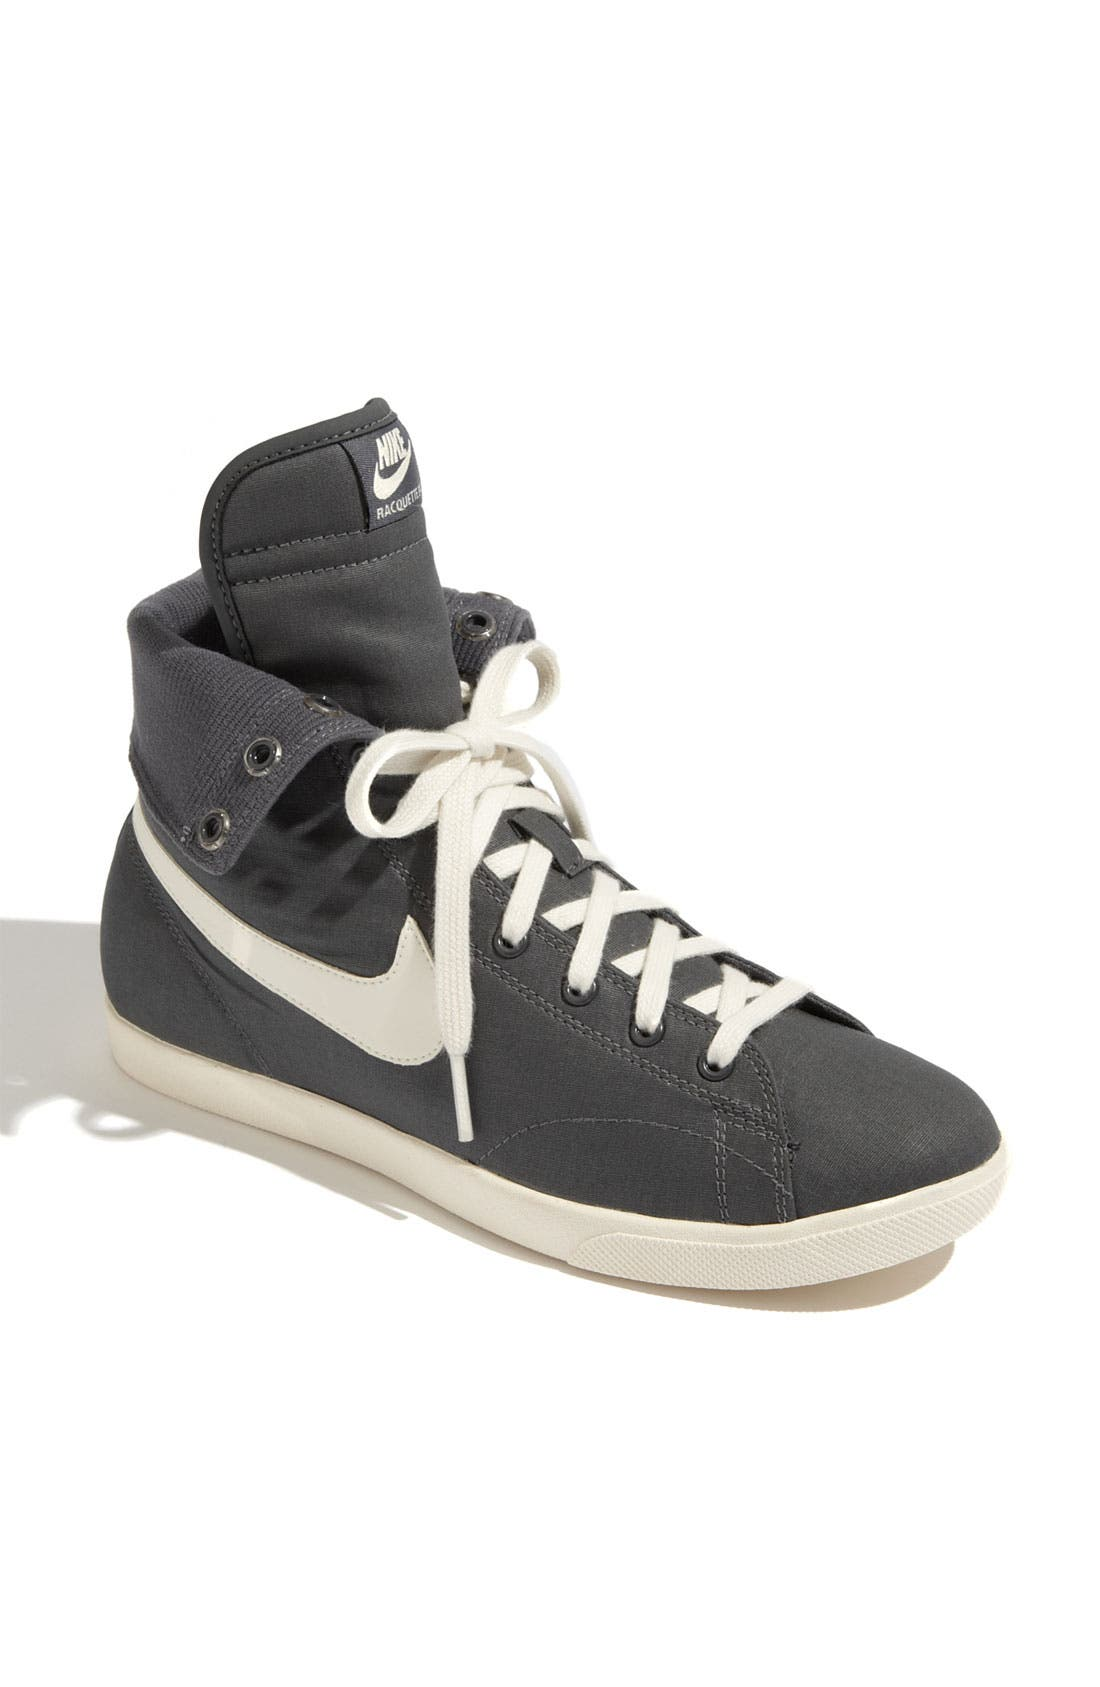 Main Image - Nike 'Raquette Mid' High Top Sneaker